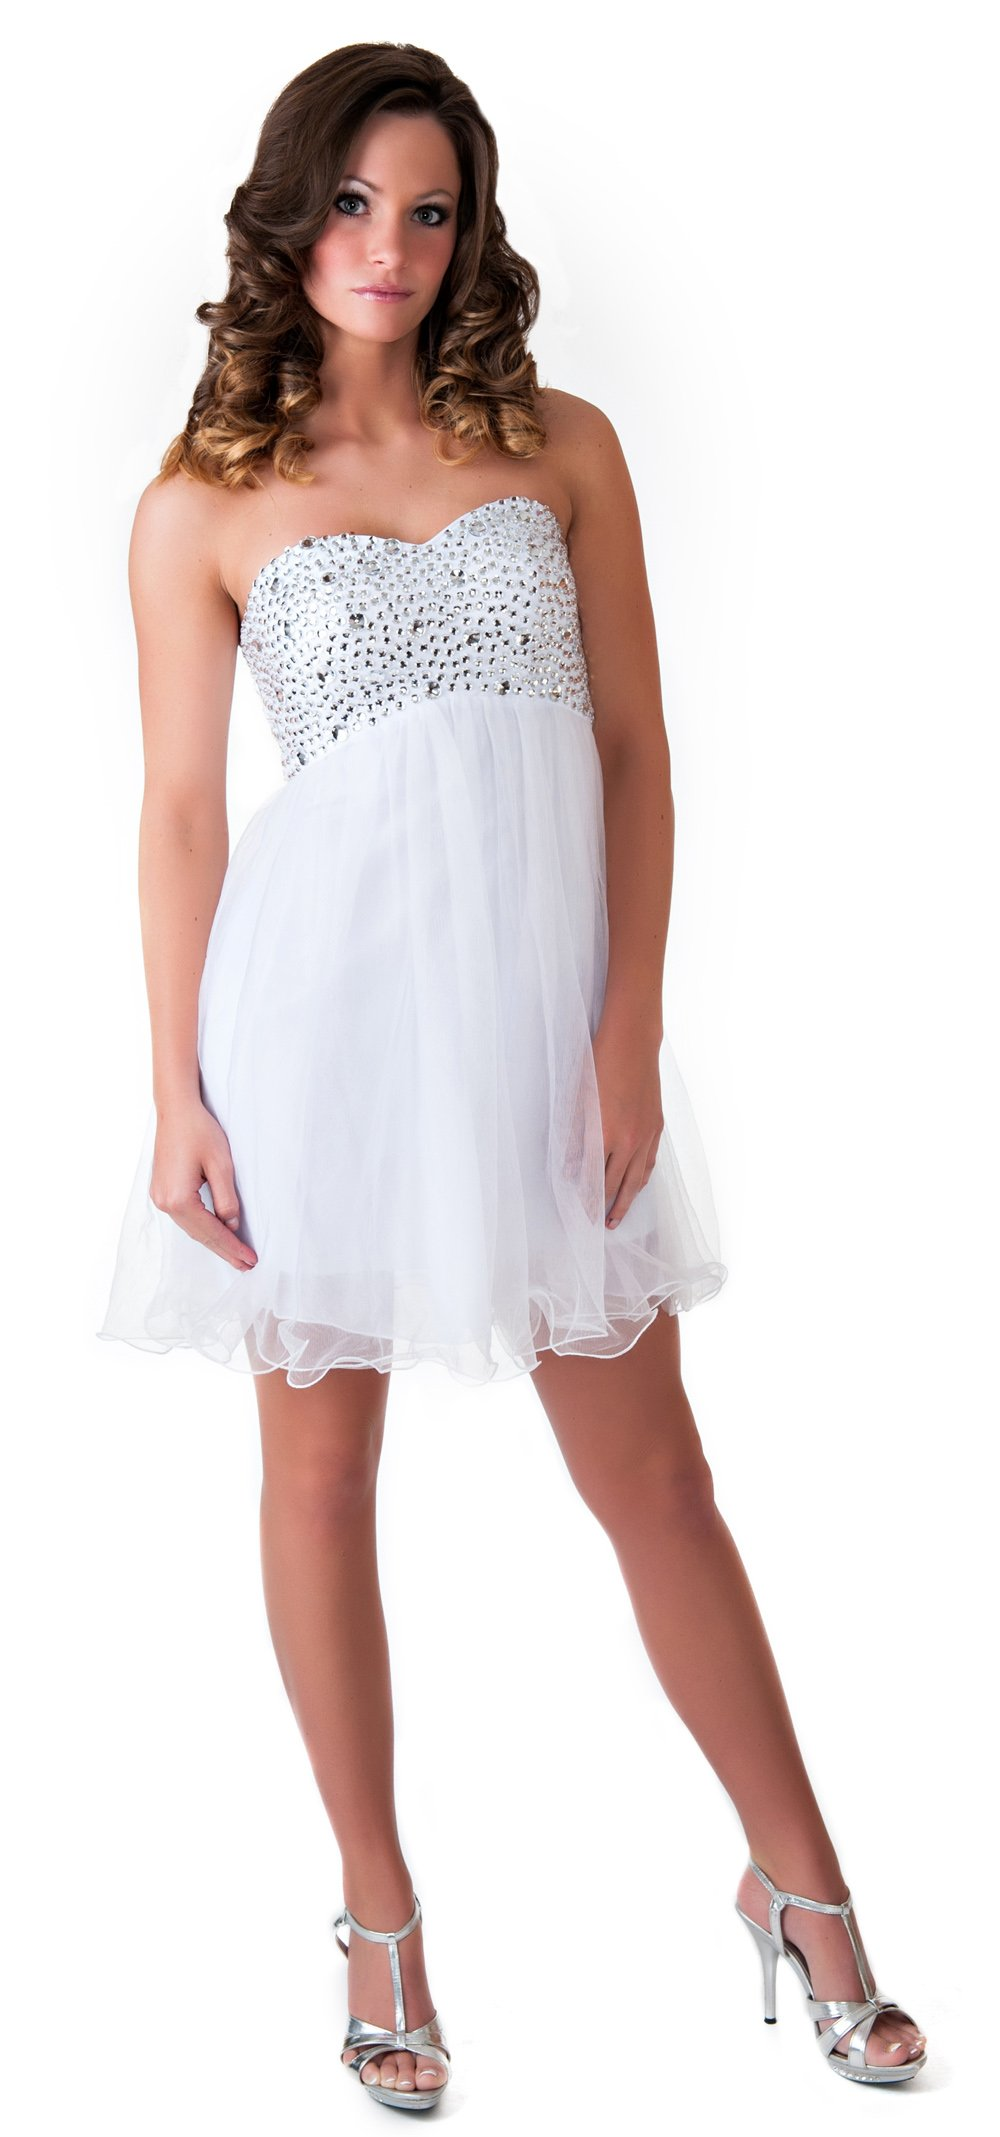 Faship Crystal Beading Lace Quinceanera Short Formal Dress